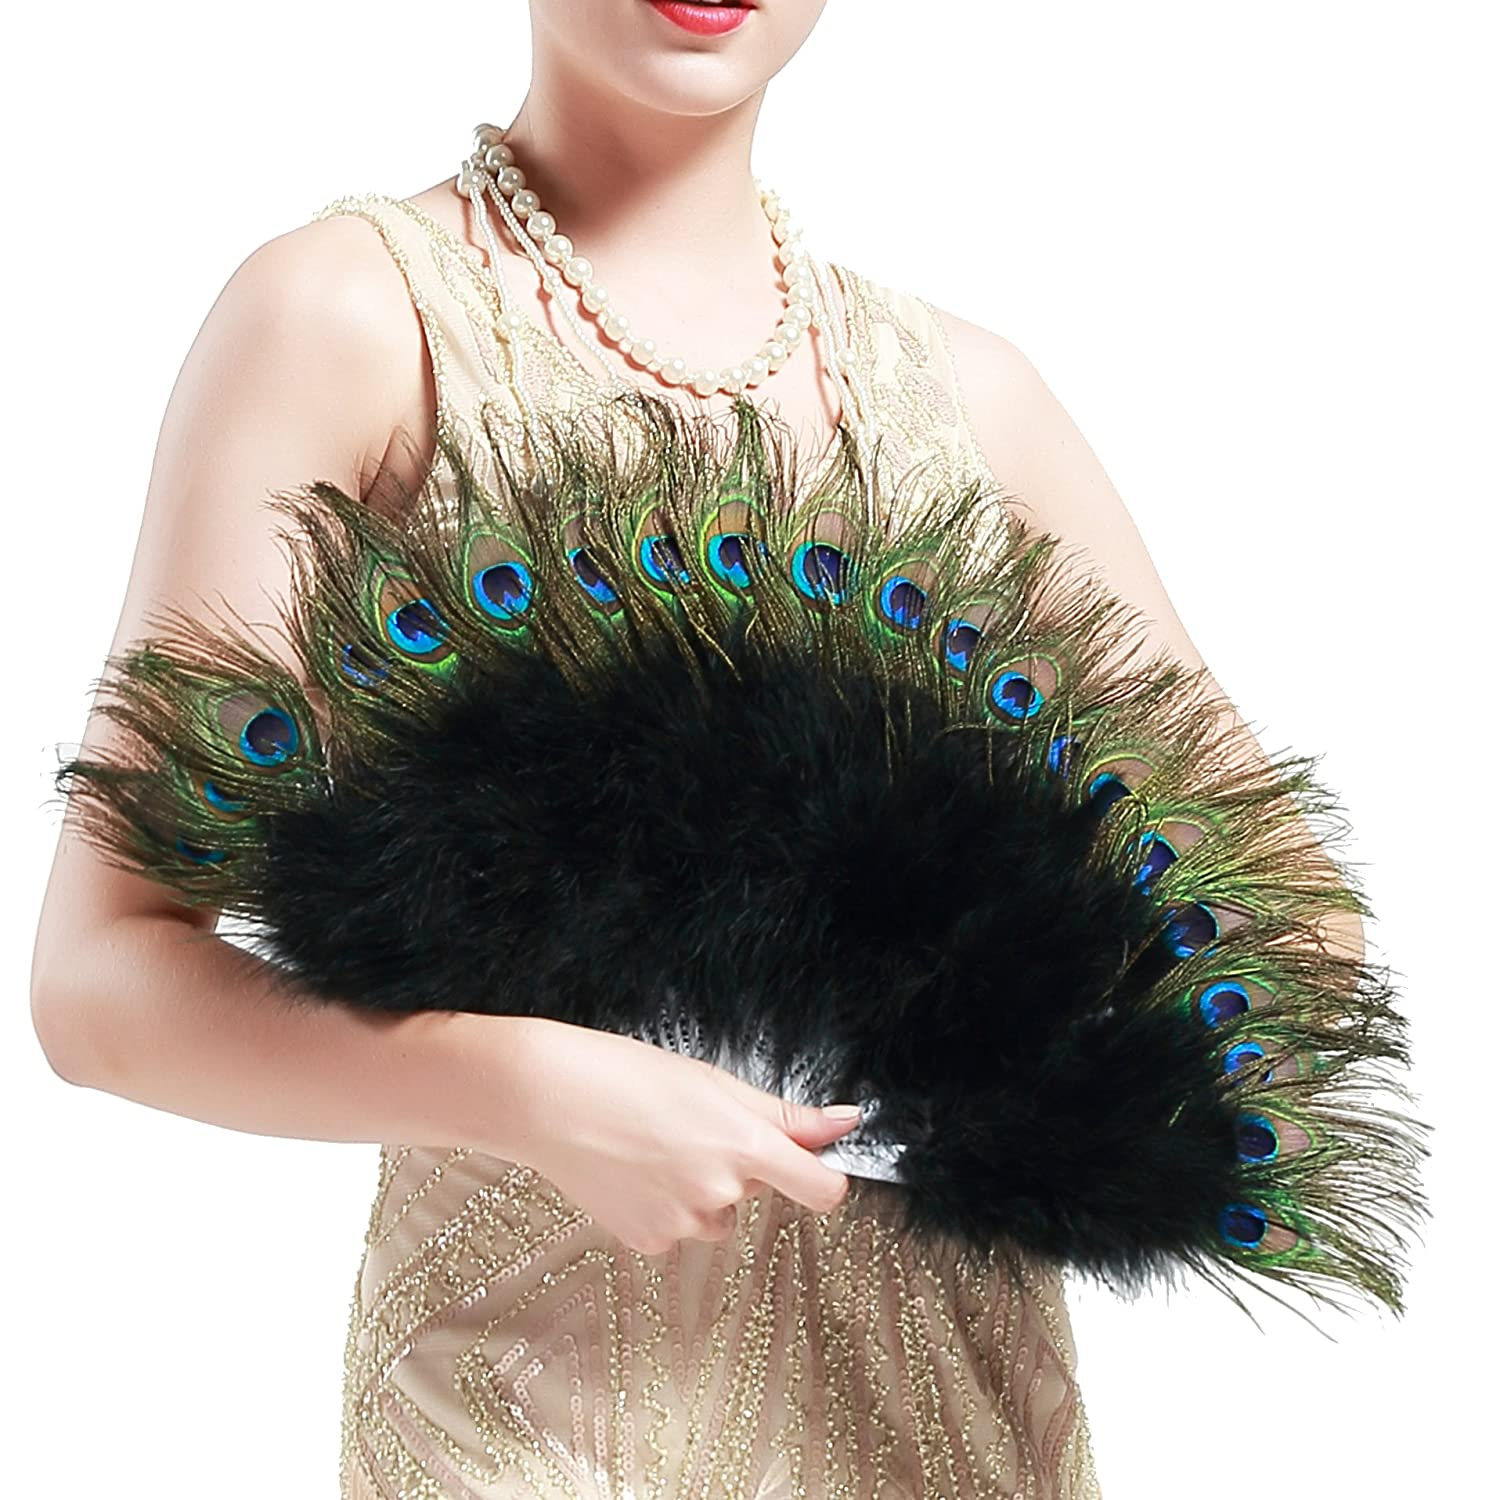 Edwardian Gloves, Handbag, Hair Combs, Wigs BABEYOND Roaring 20s Vintage Style Peacock & Black Marabou Feather Fan Flapper Accessories (15 L & 27